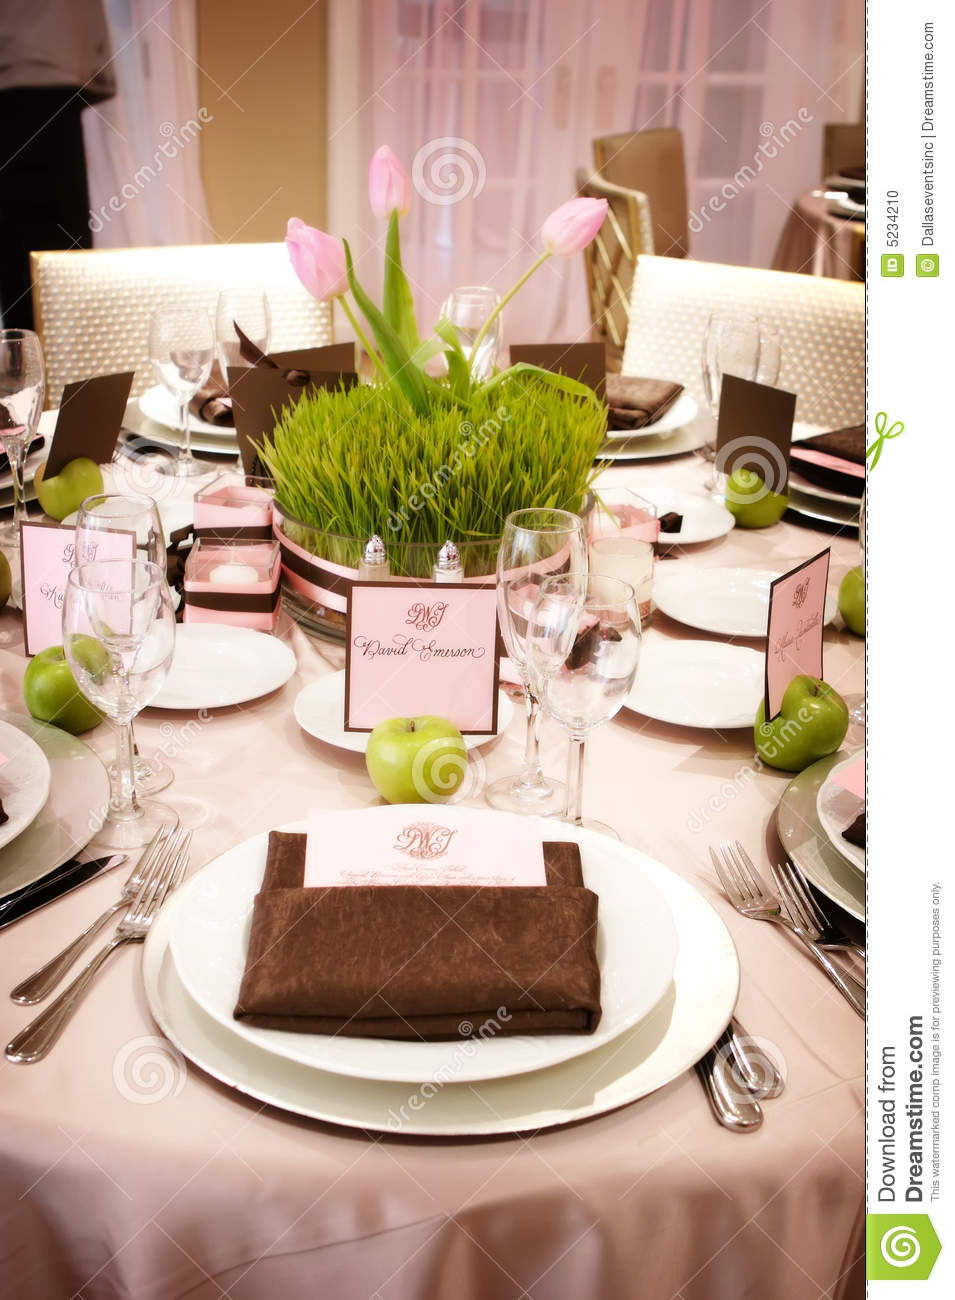 Table setting at a luxury wedding reception. Fabric beauty. & Table Setting At A Luxury Wedding Reception Stock Photo - Image of ...